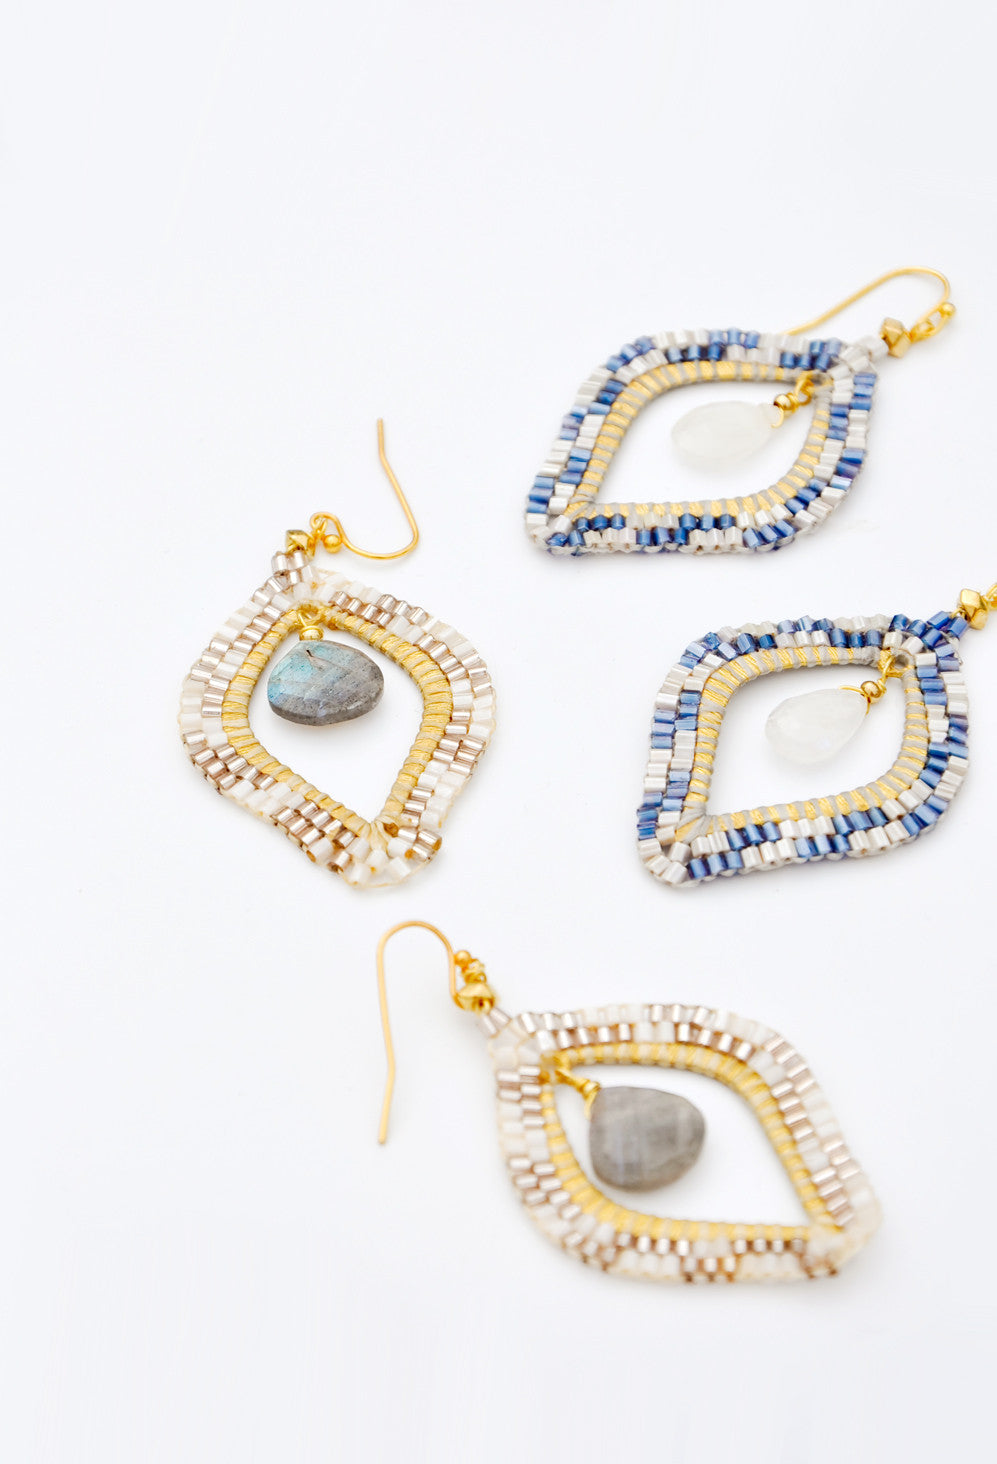 2: Medina Earrings in  - LEIF